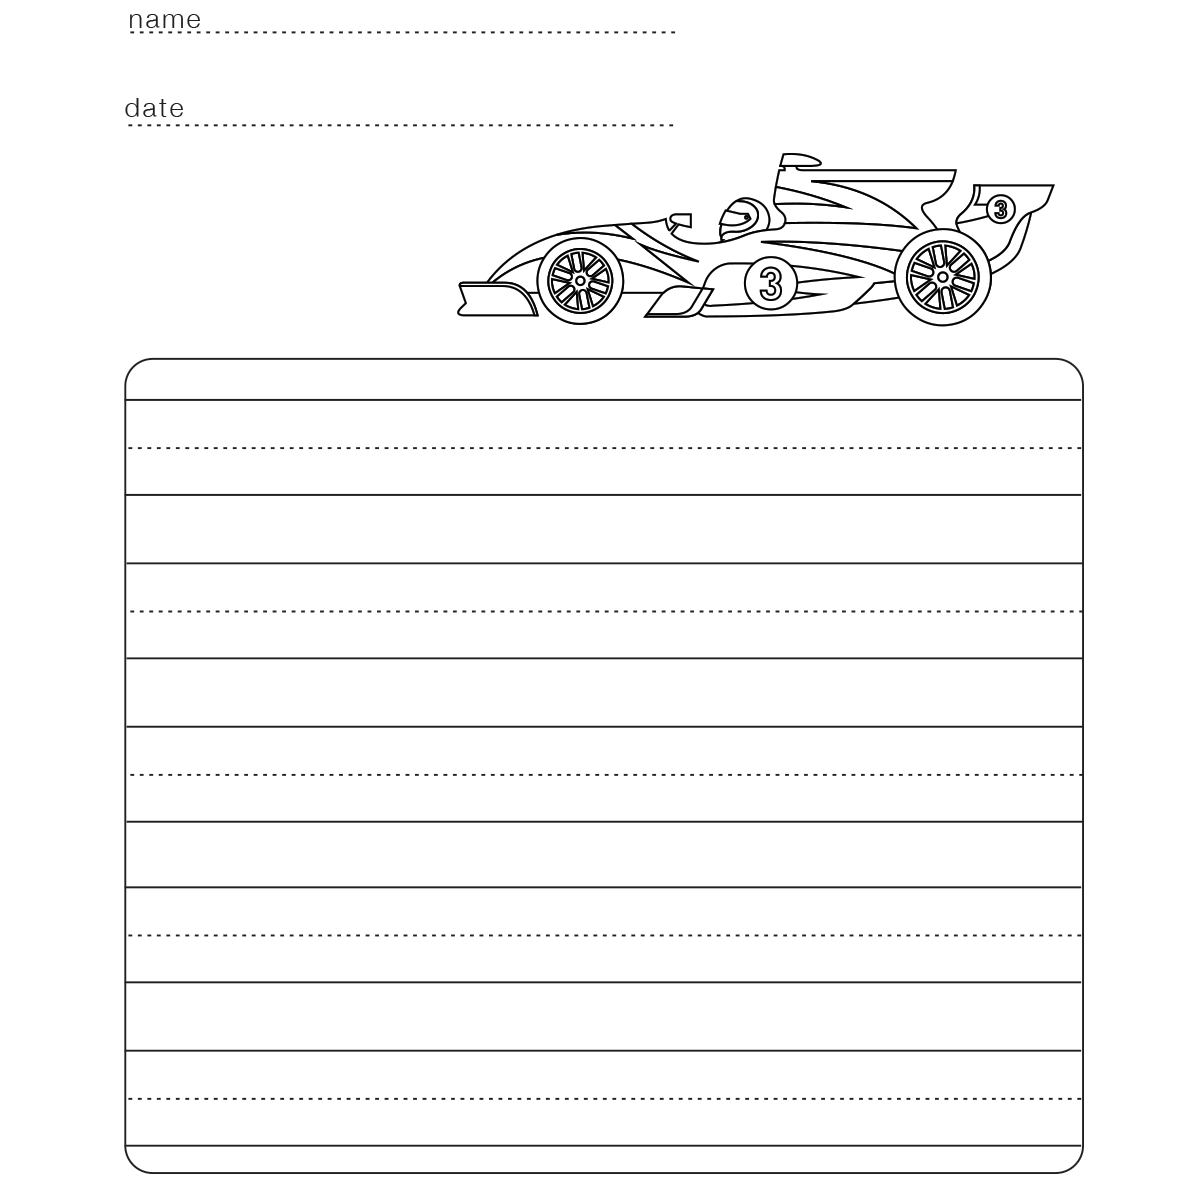 Practice Writing Printable Race Car Babadoodle